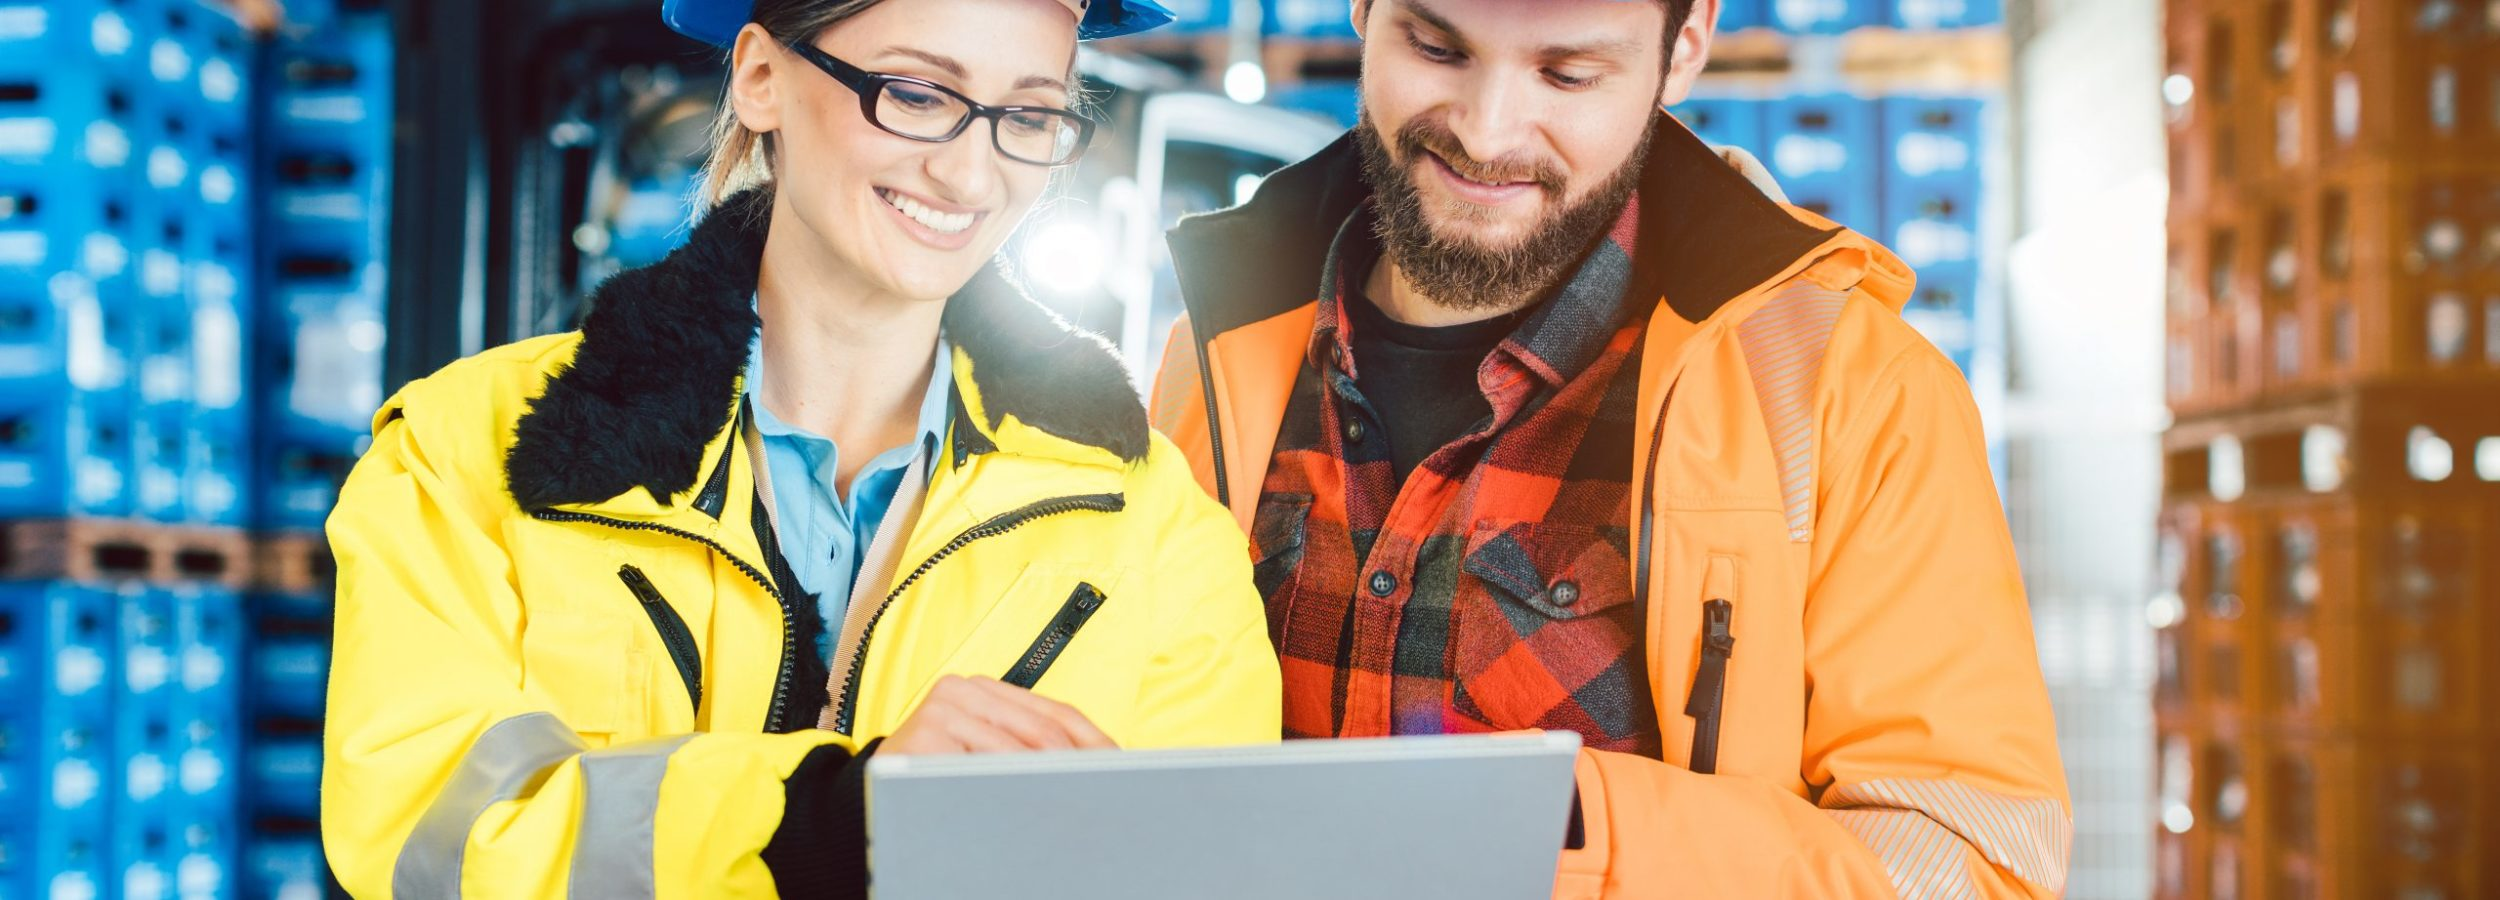 Woman and man as workers in logistics center using computer checking data